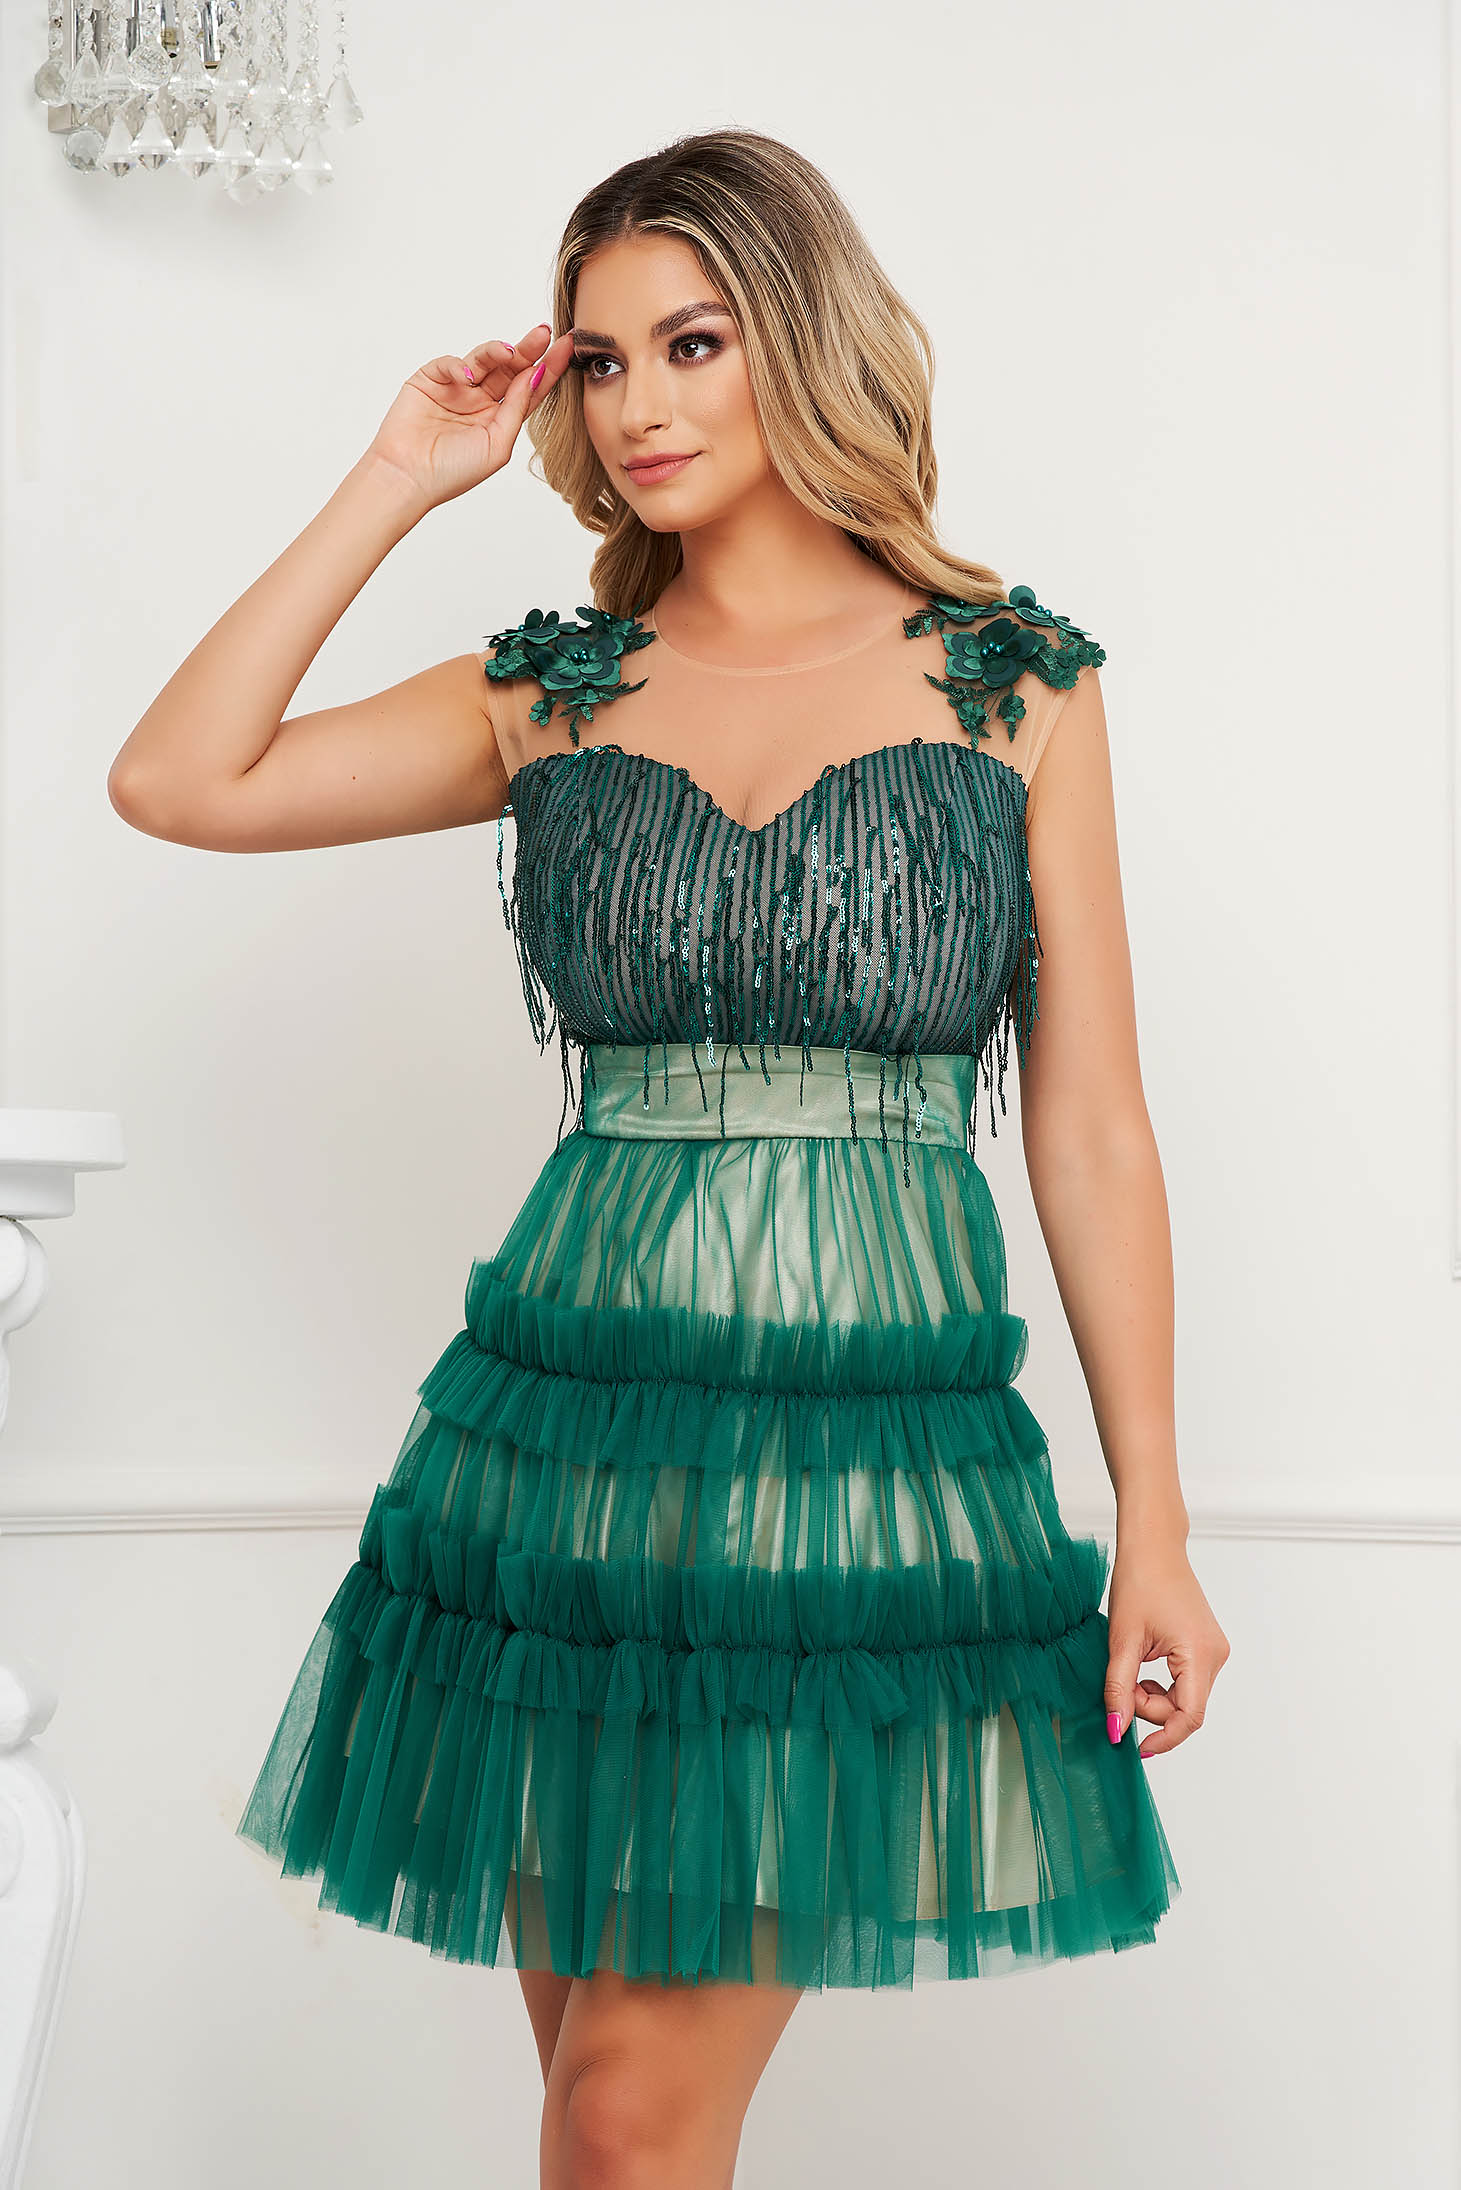 Green dress a-line occasional with sequin embellished details